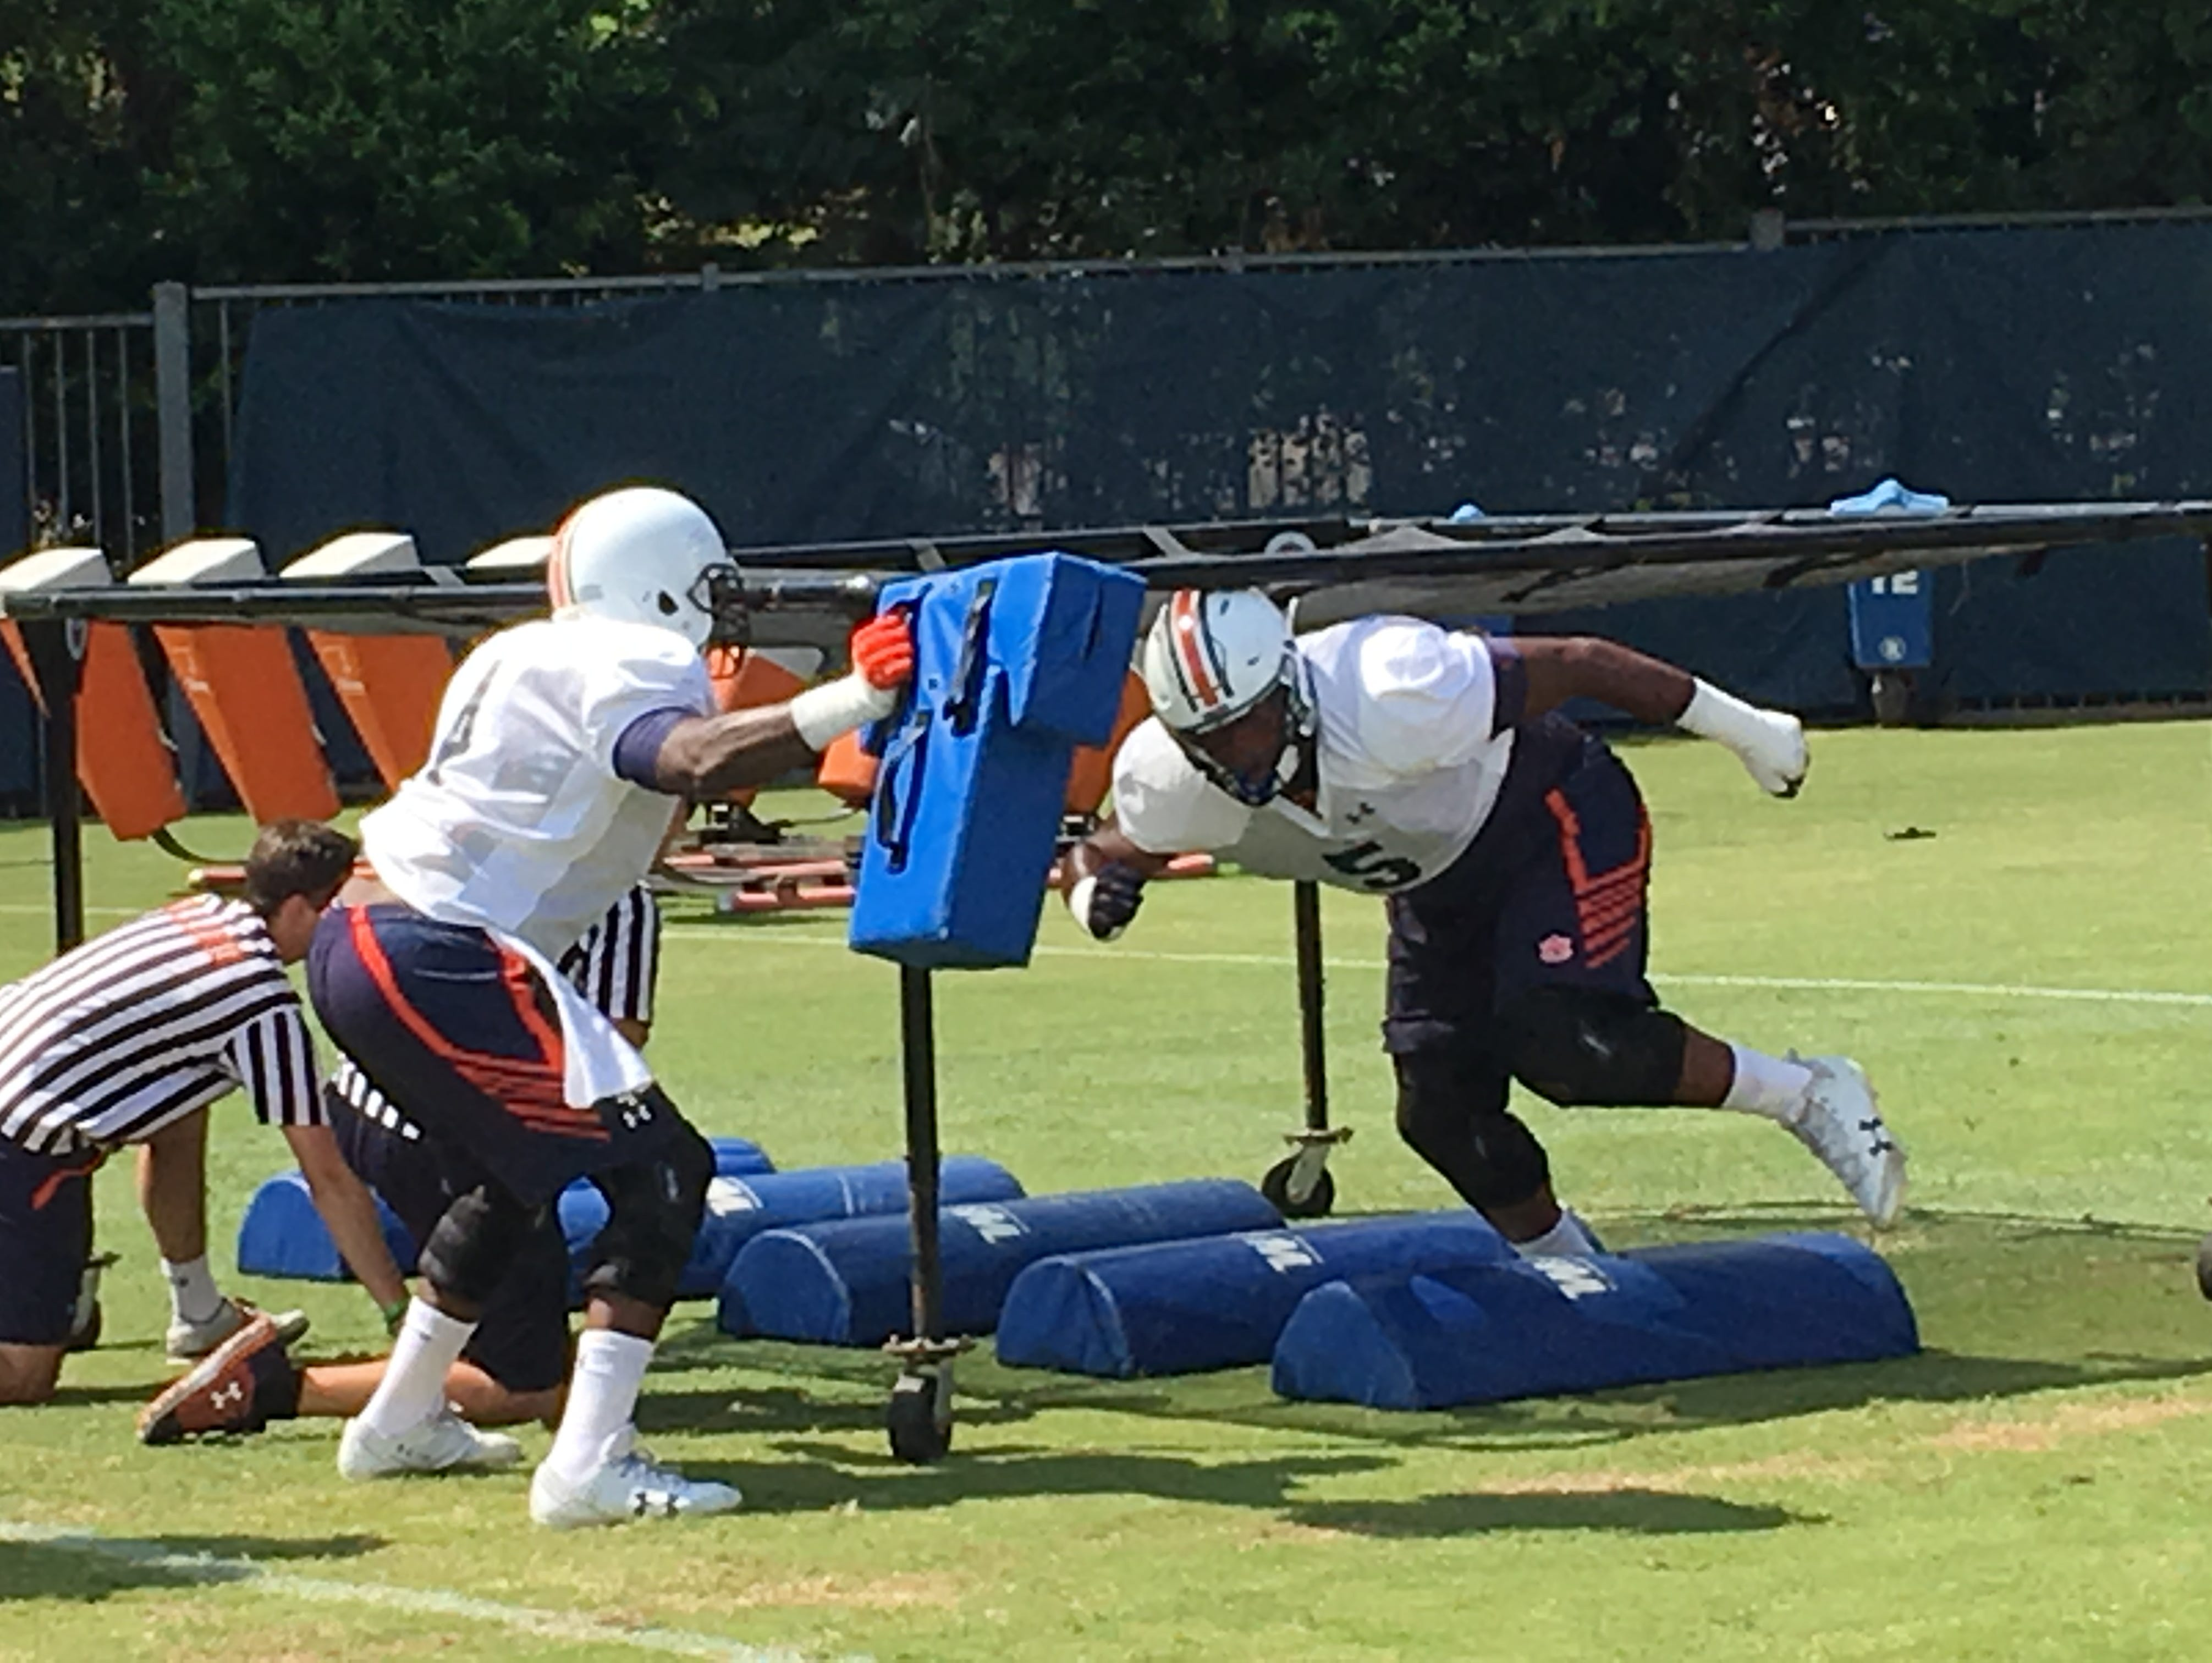 Auburn sophomore defensive lineman Derrick Brown going through a drill at preseason practice on Aug. 2, 2017.